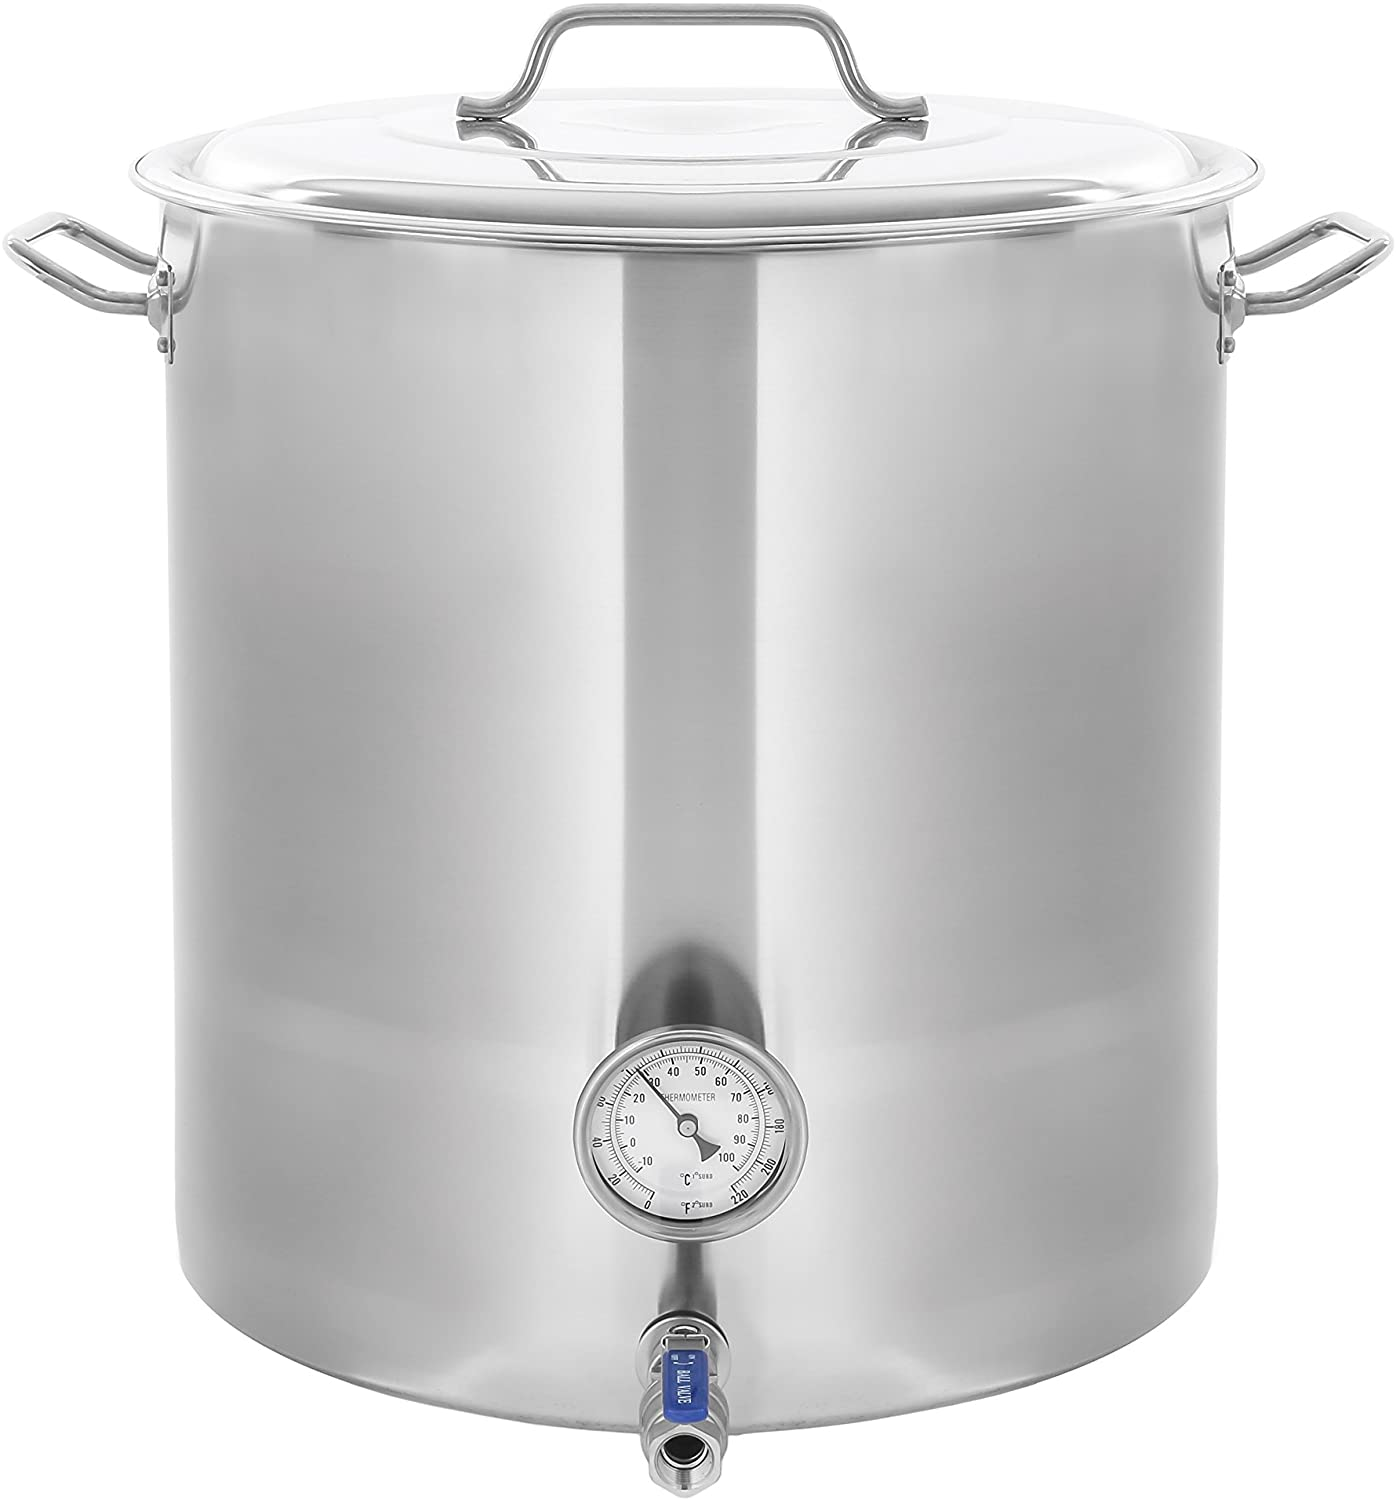 CONCORD Stainless Steel Home Brew Kettle Stock Pot (Weldless Fittings) (30 QT/ 7.5 Gal)